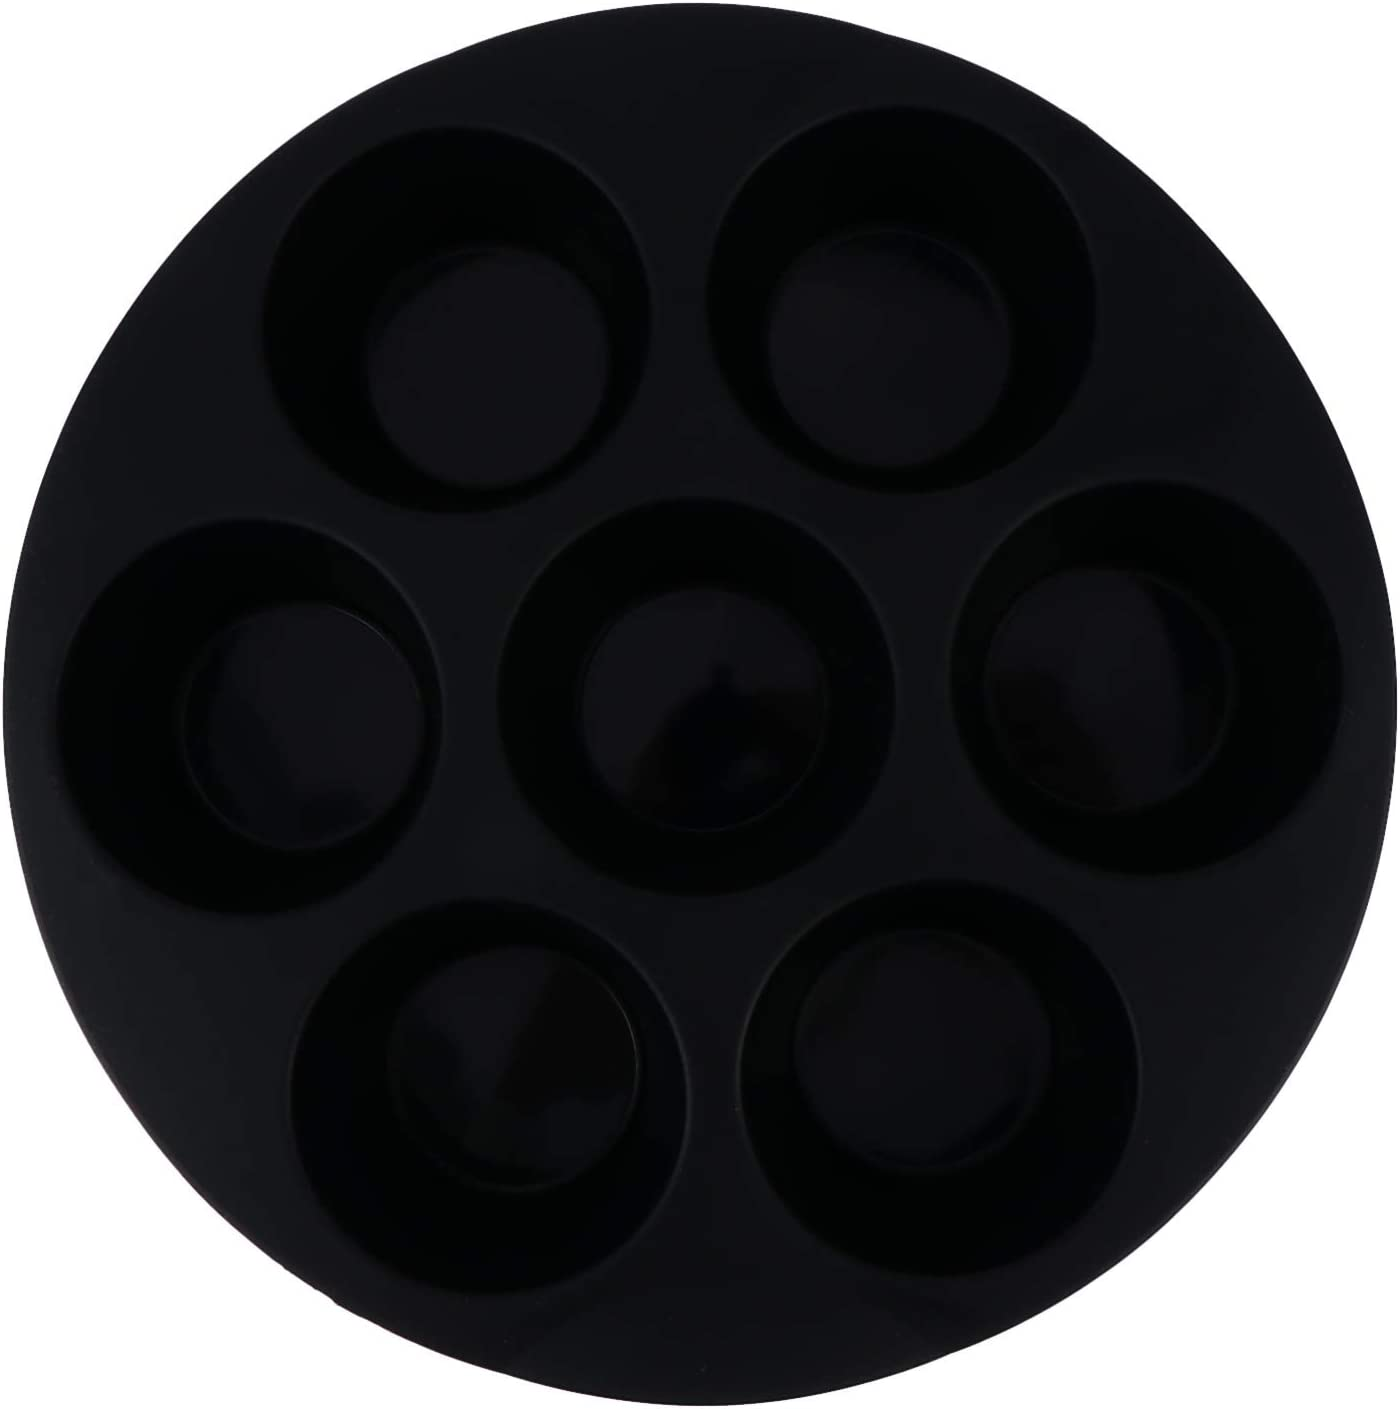 Cabilock Silicone shopping Muffin Cake Cups Cup 7 Ranking TOP20 Non Pan